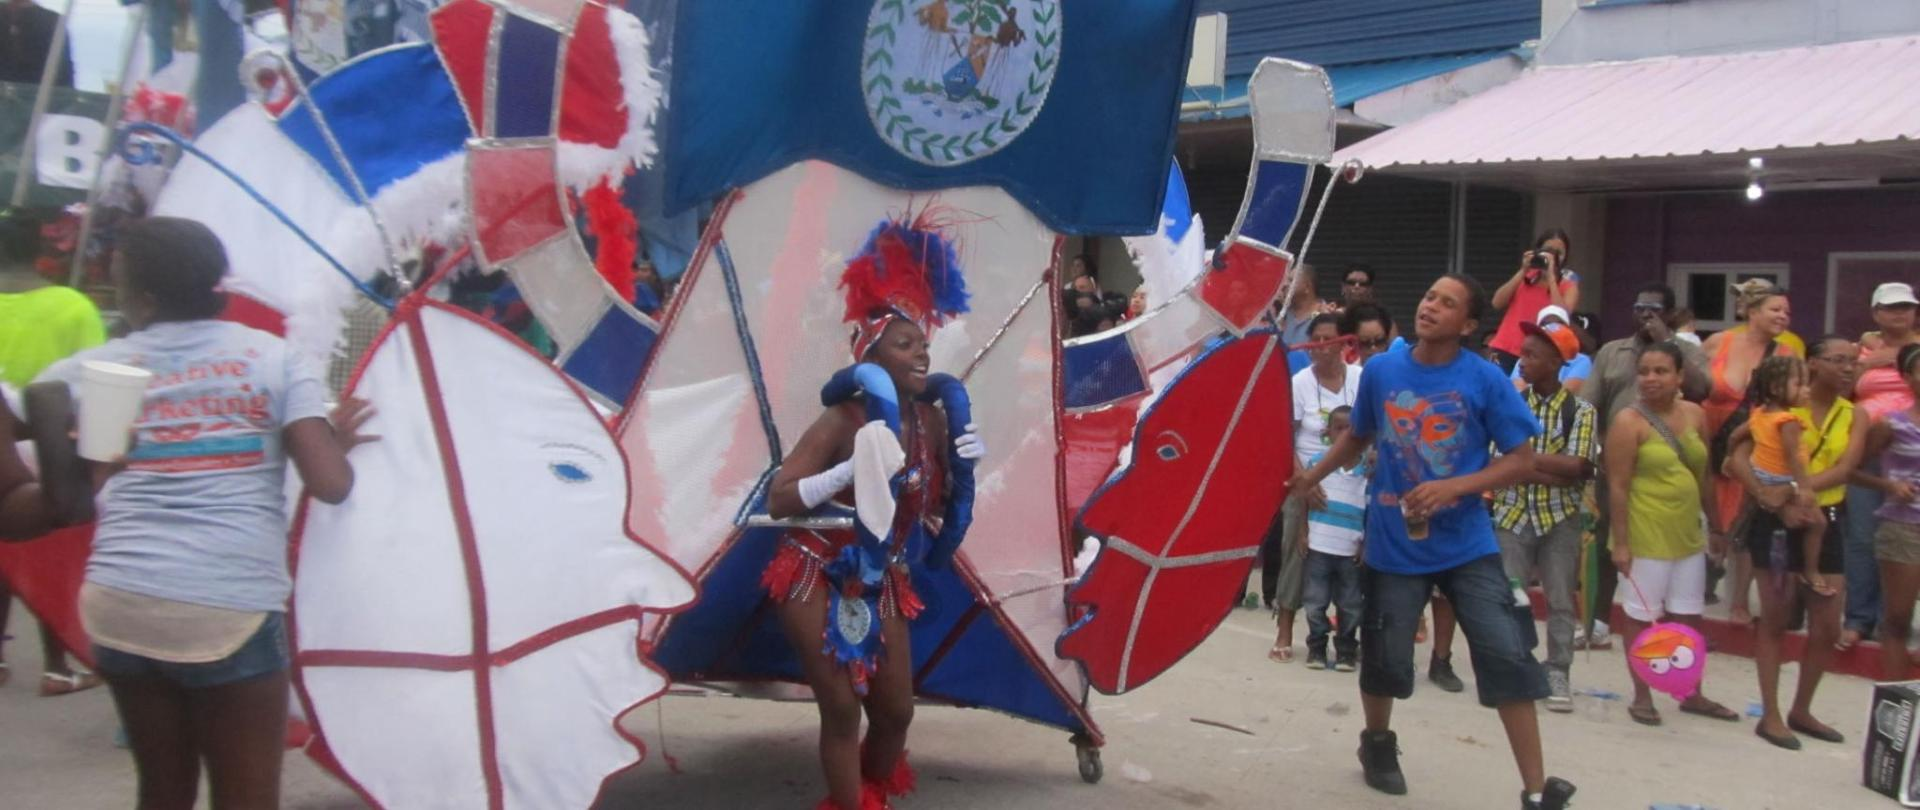 September Celebration - Belize City Carnival Parade